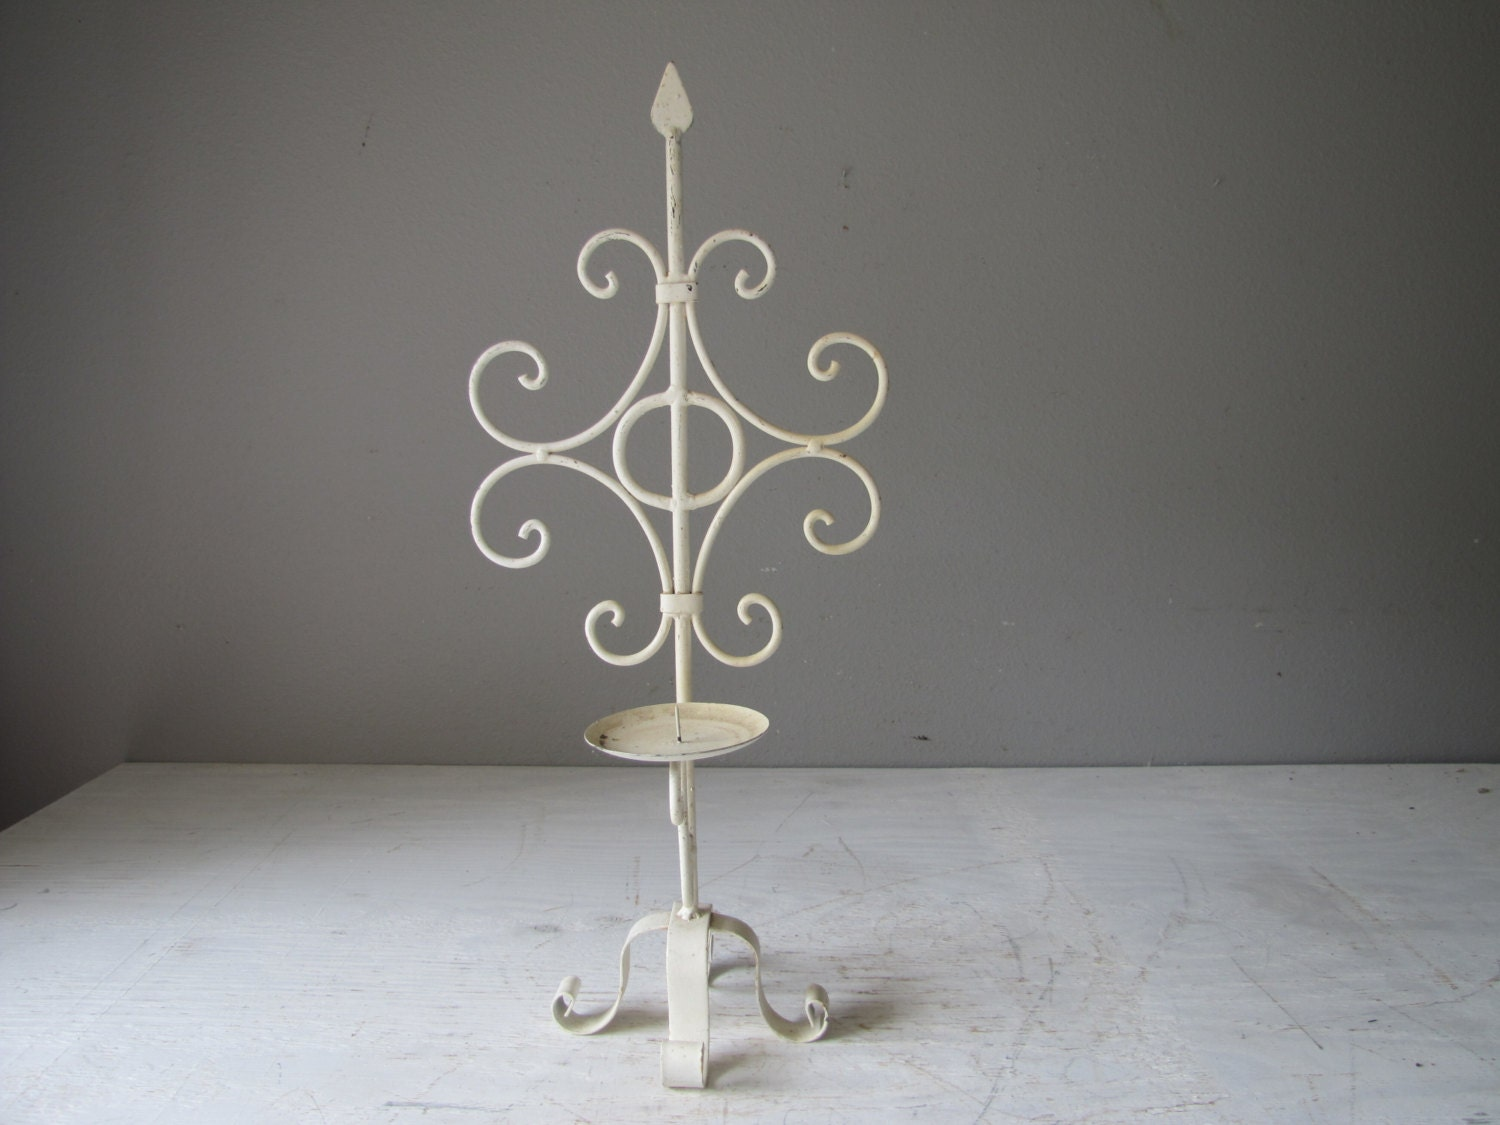 Iron Candle Stand Designs : Vintage candle stand wrought iron metal holder